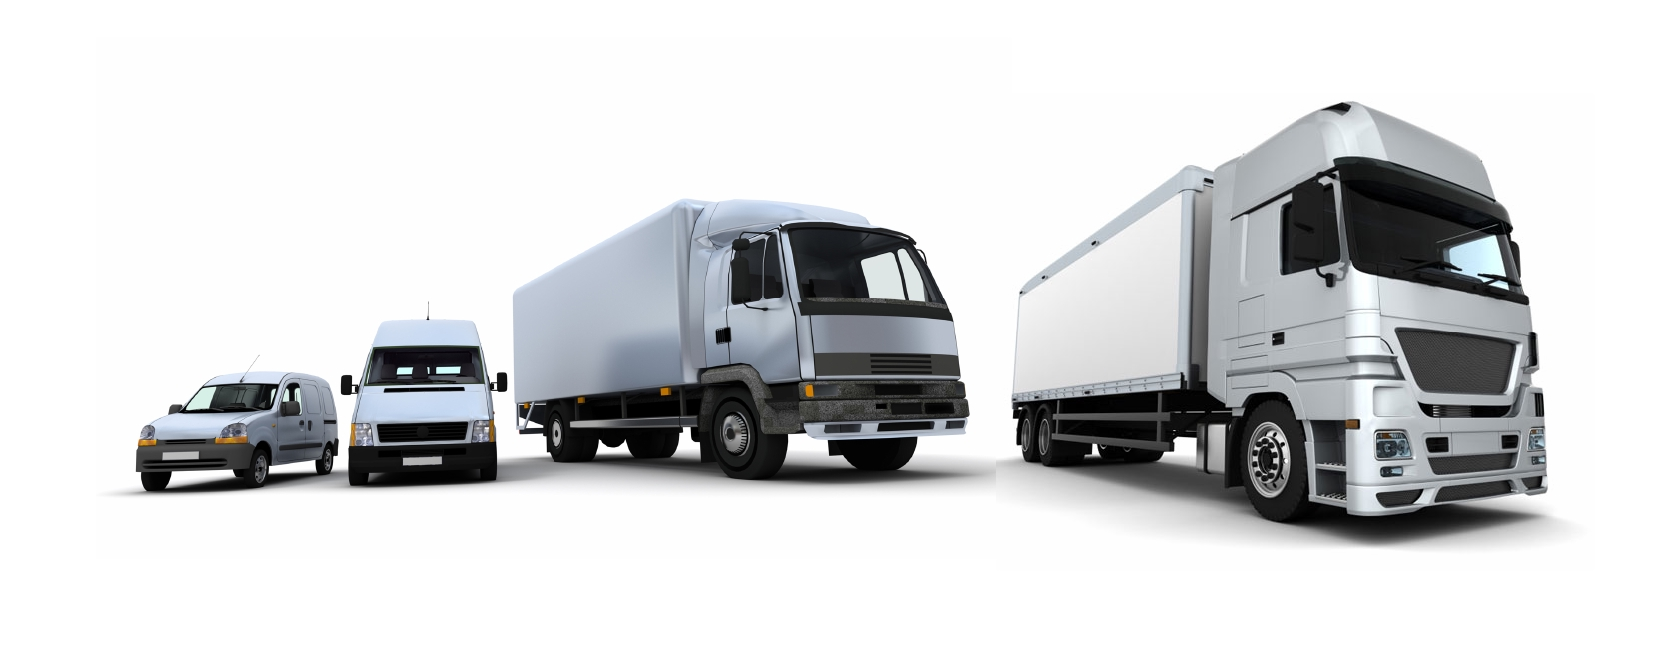 Commercial Vehicles CCTV and Tracking